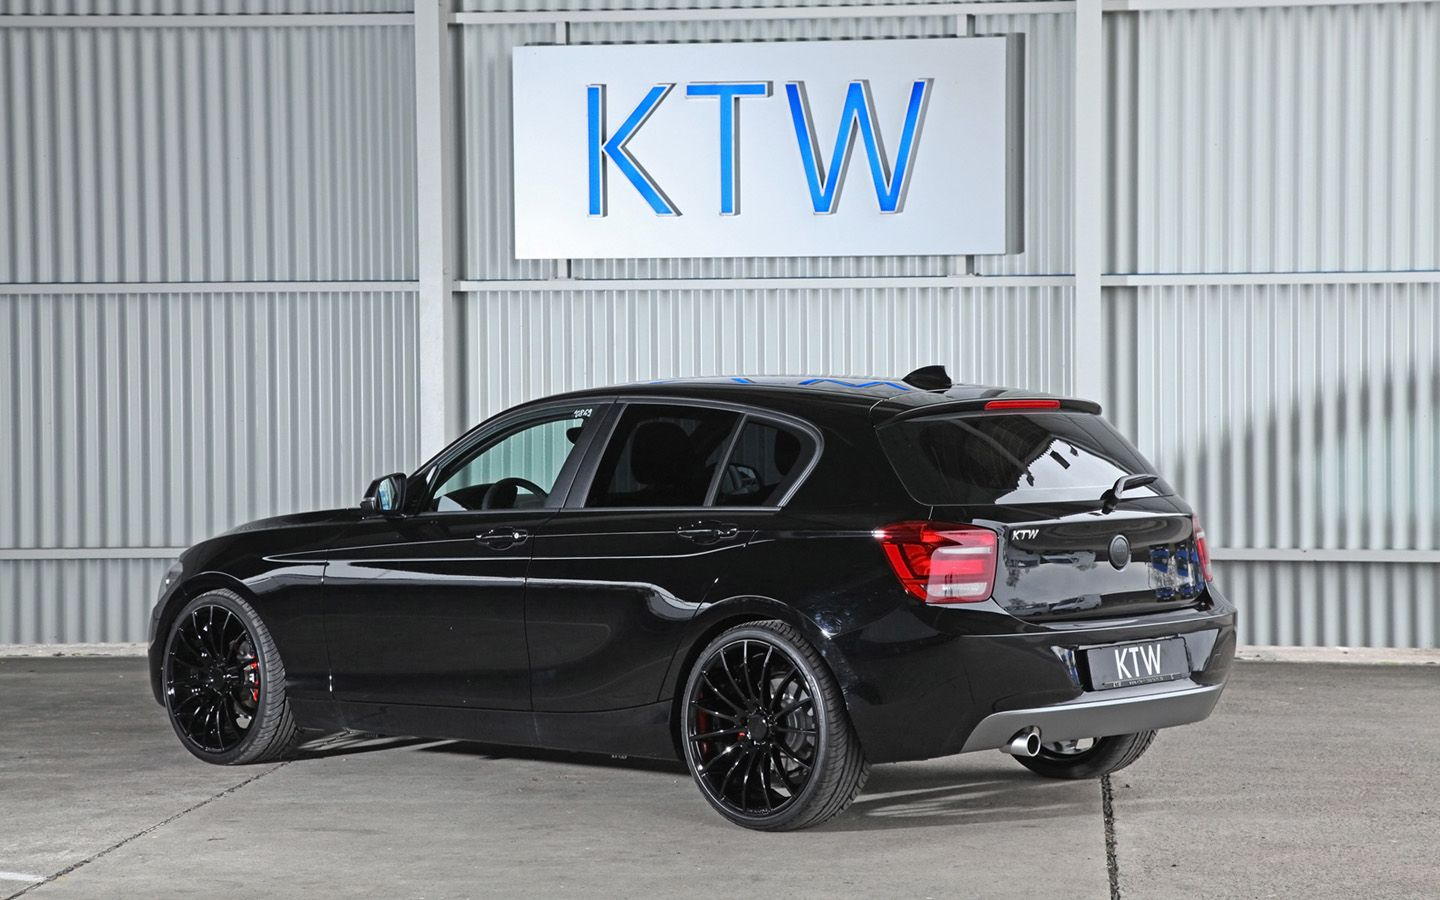 Ktw Tuning Bmw 1 Series In Black And White Carros Bmw Auto